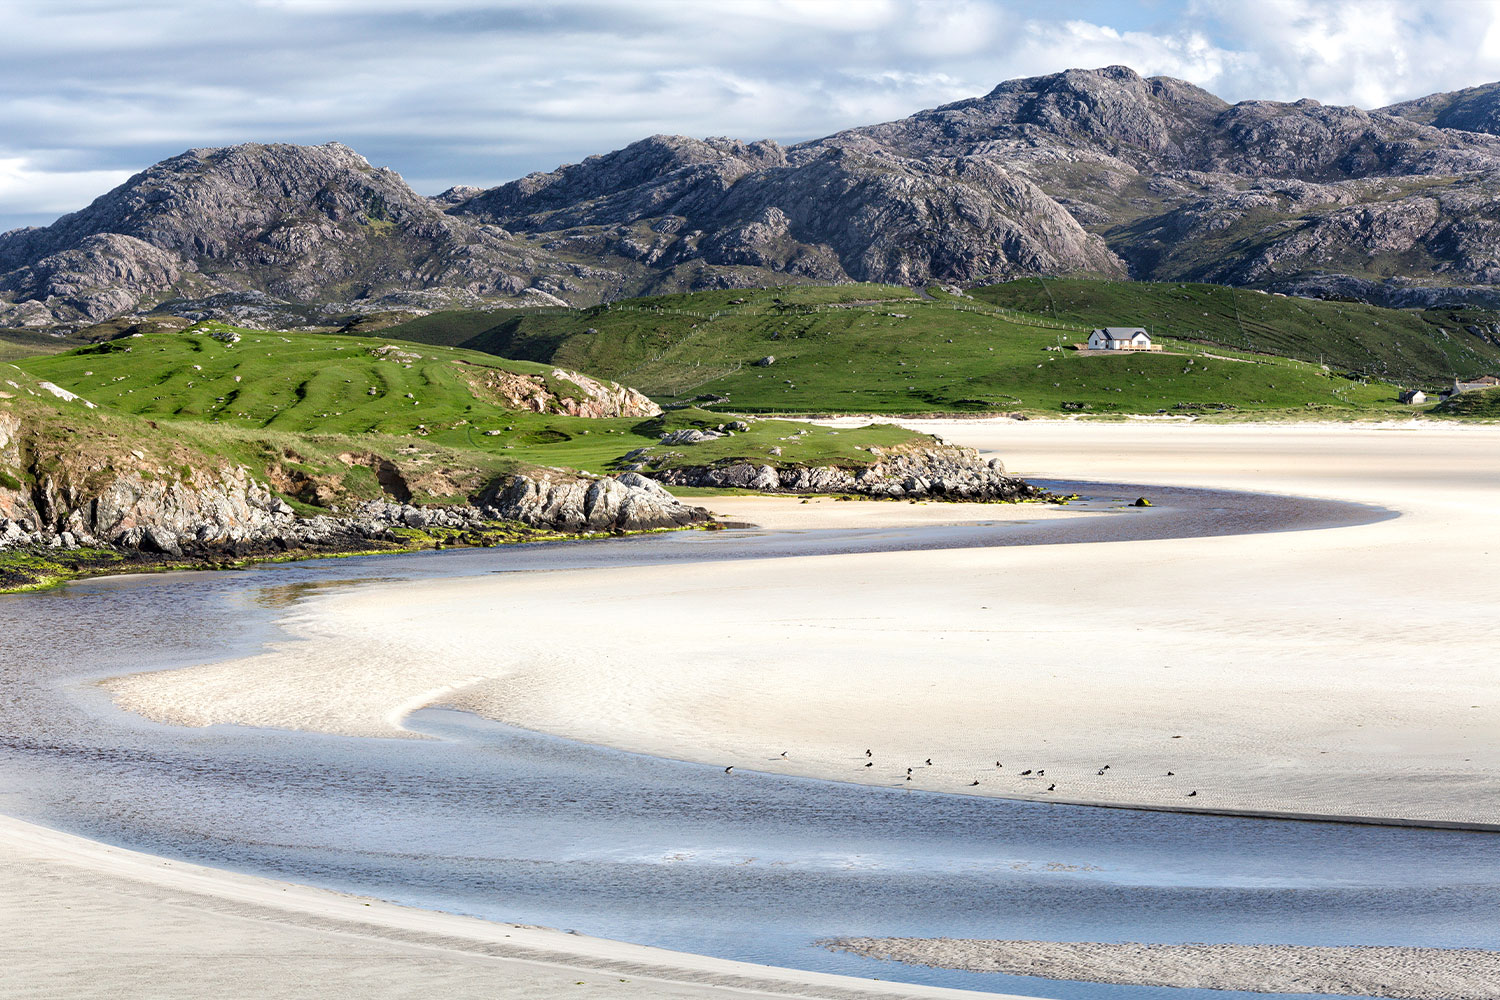 Uig Beach from the Isle of Lewis & Harris, Outer Hebrides, Scotland